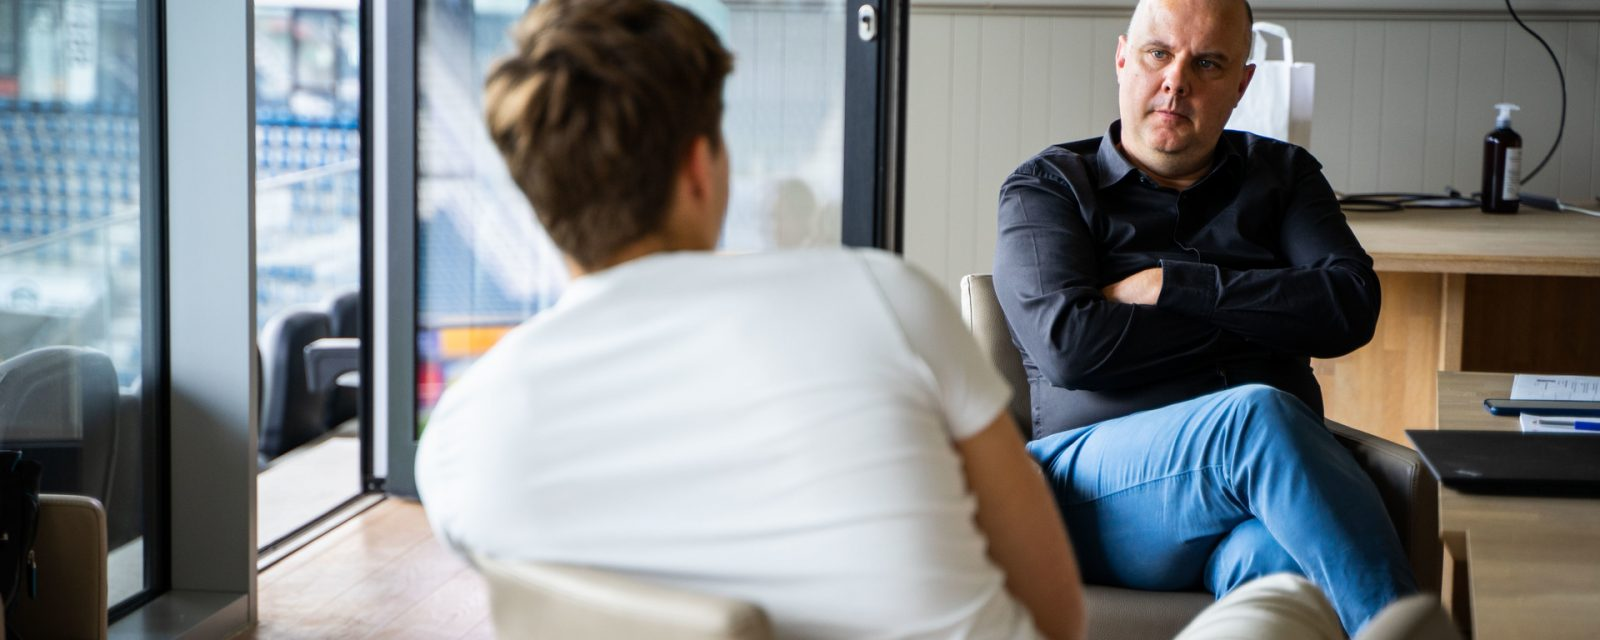 The 7 phases of a sales conversation (and how best to approach them!)